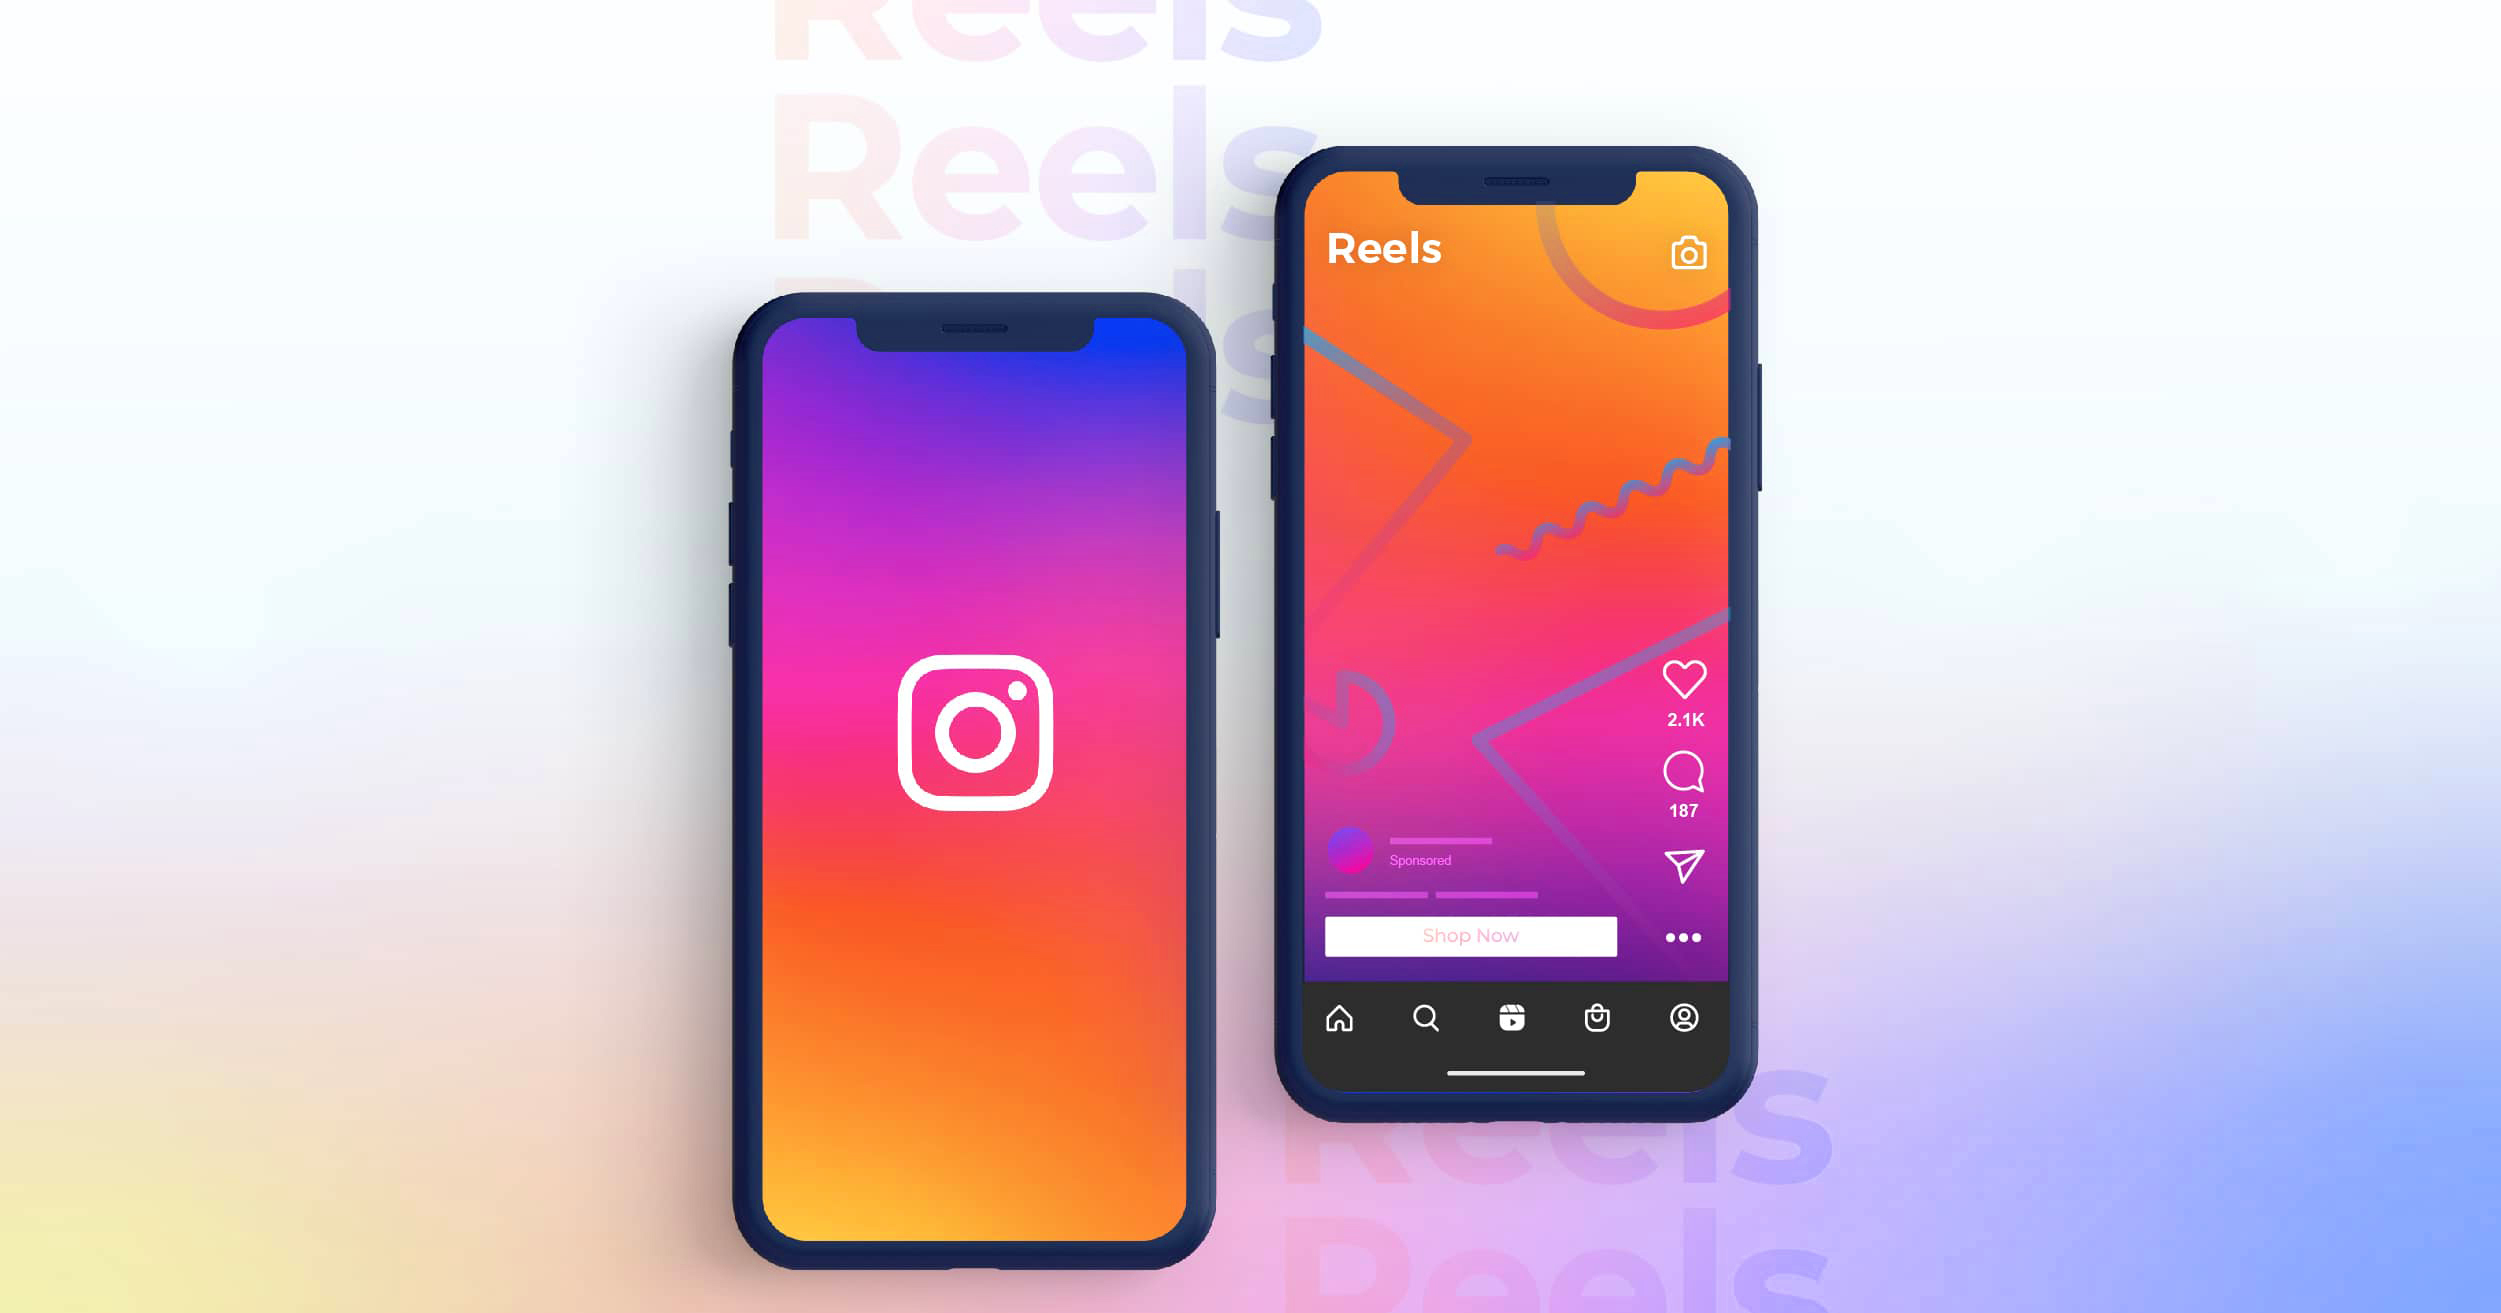 Instagram Announces Reels Ads: What You Need To Know